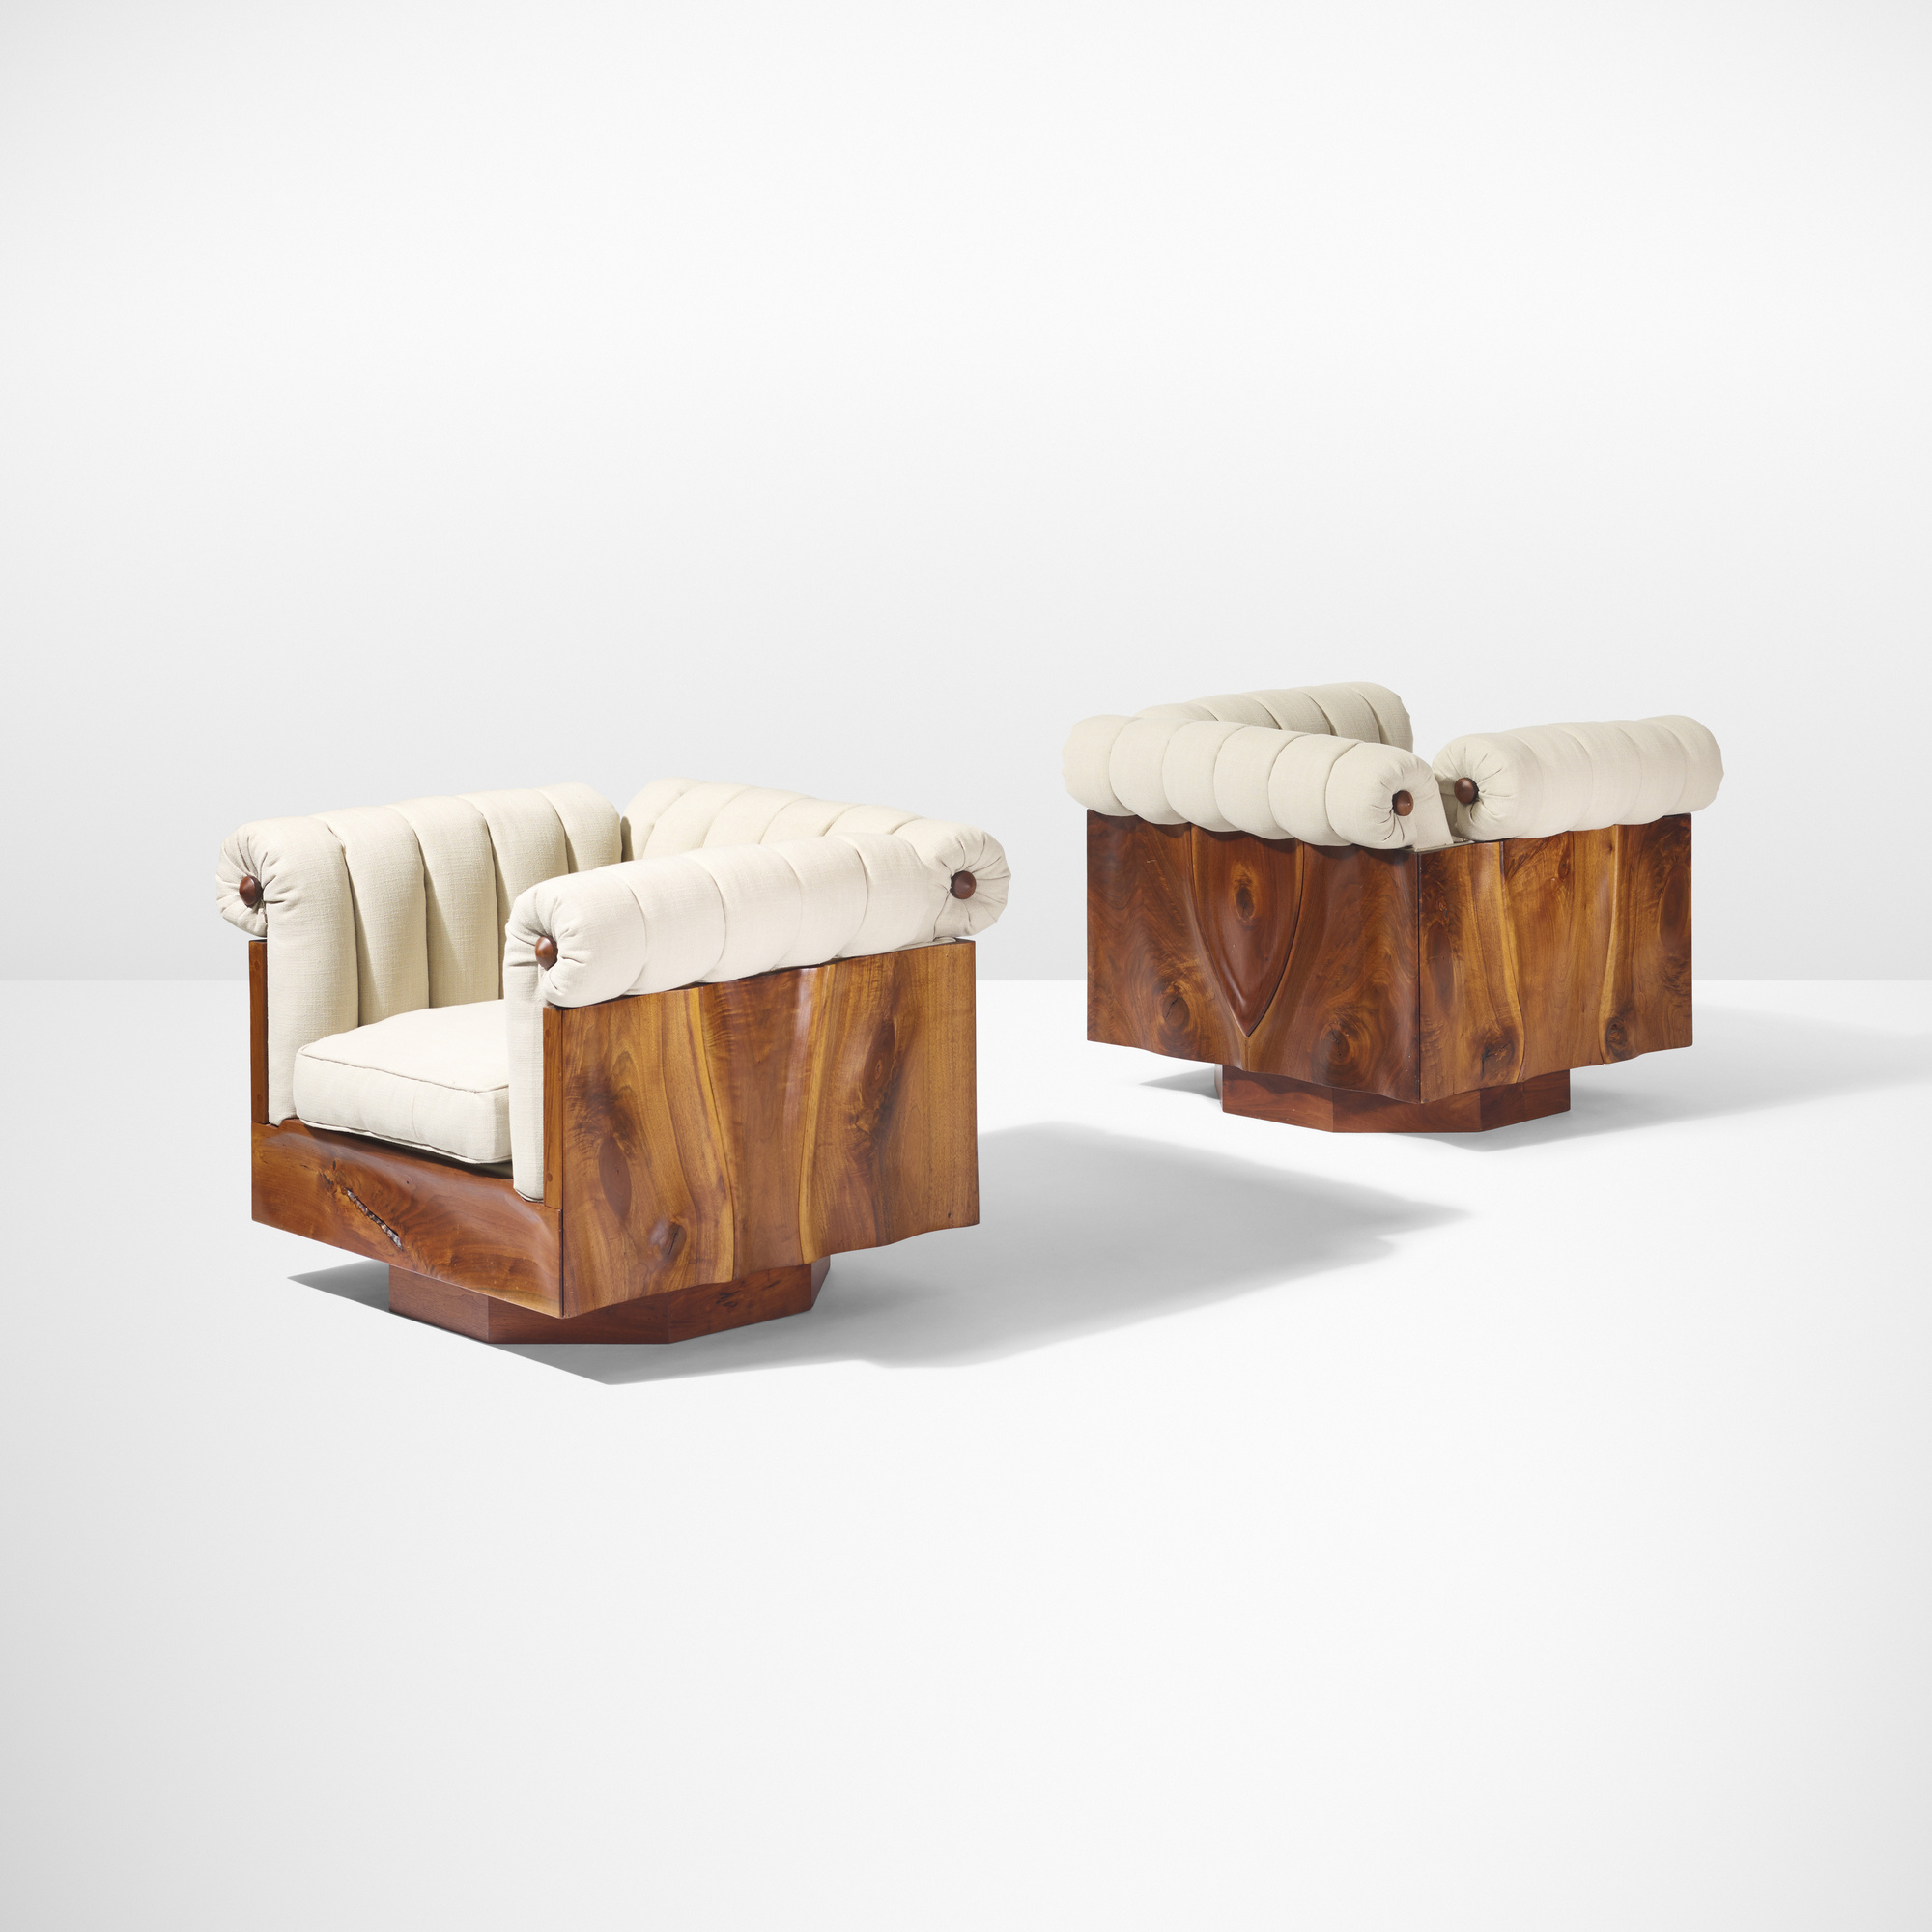 40: Phillip Lloyd Powell / Rare carved panel lounge chairs, pair (2 of 5)